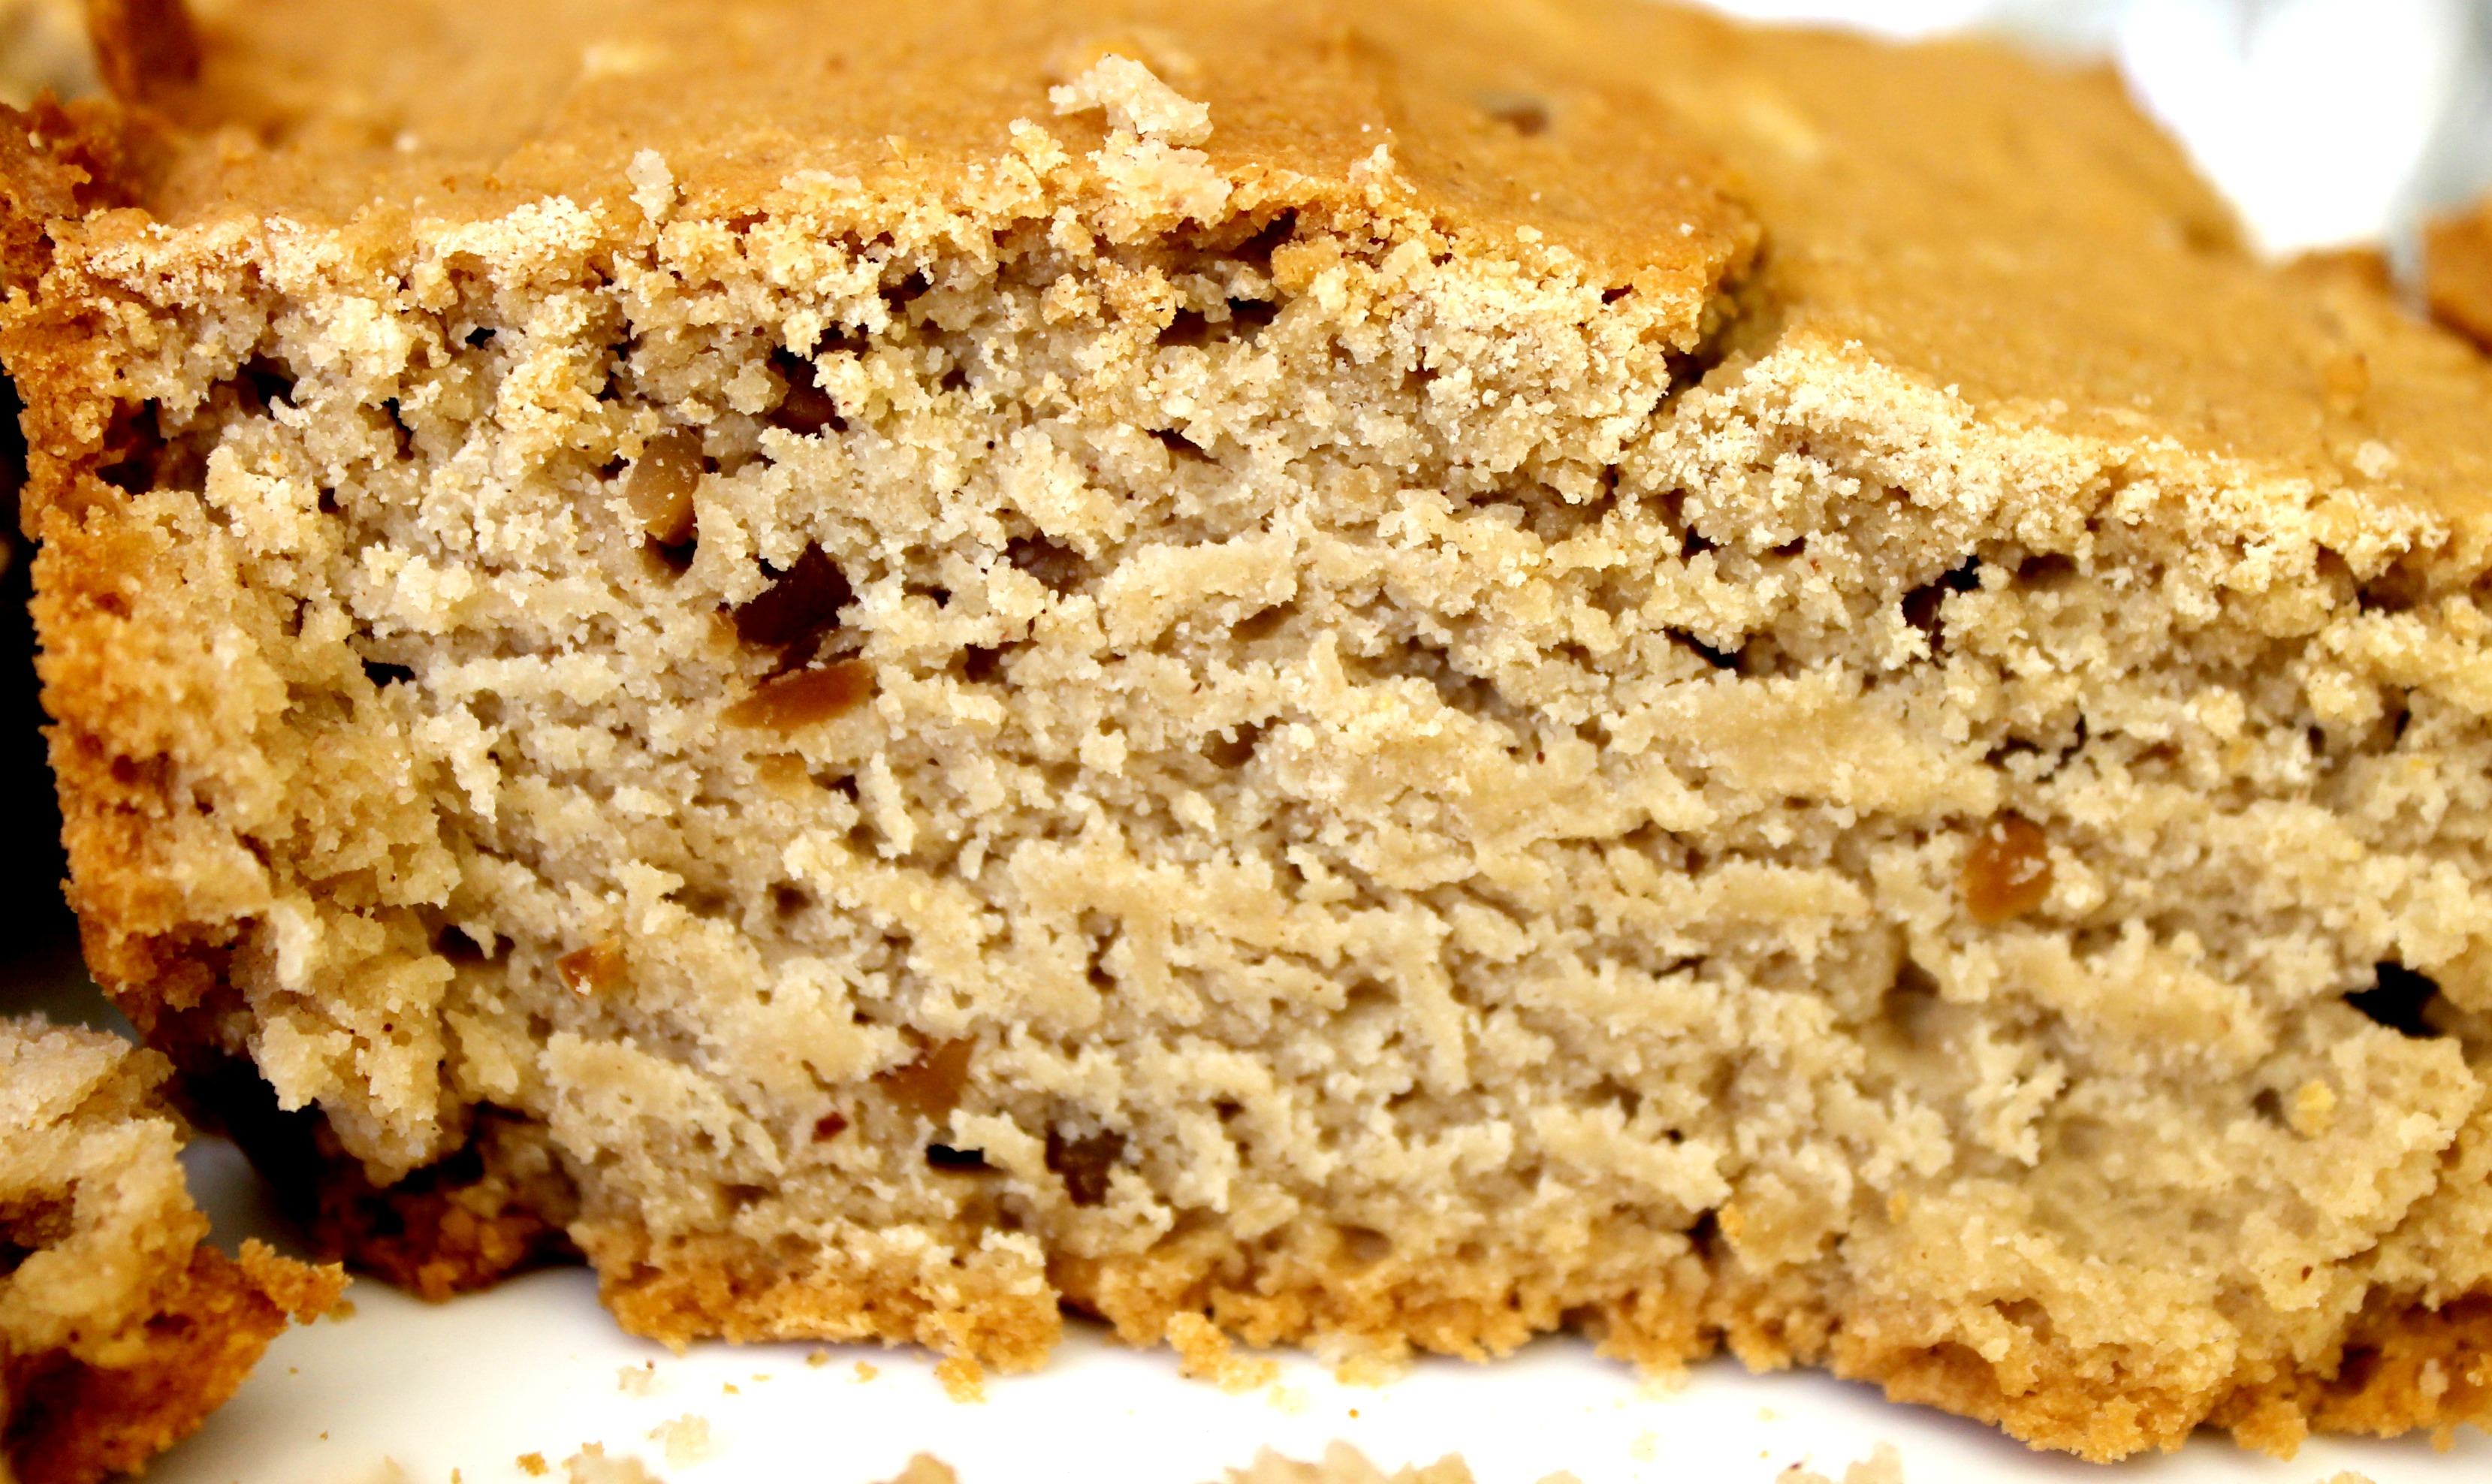 peanut butter bread close up